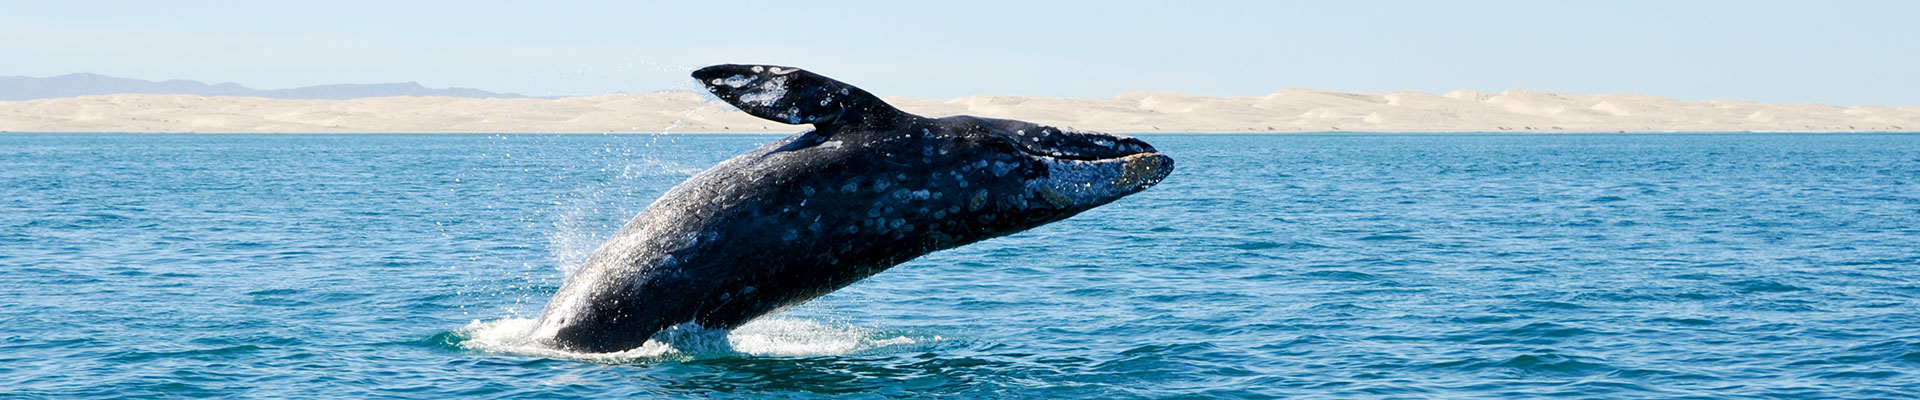 Fantasy RV Tours: 15 Day Baja Whale Watching (15MWWP-022822)